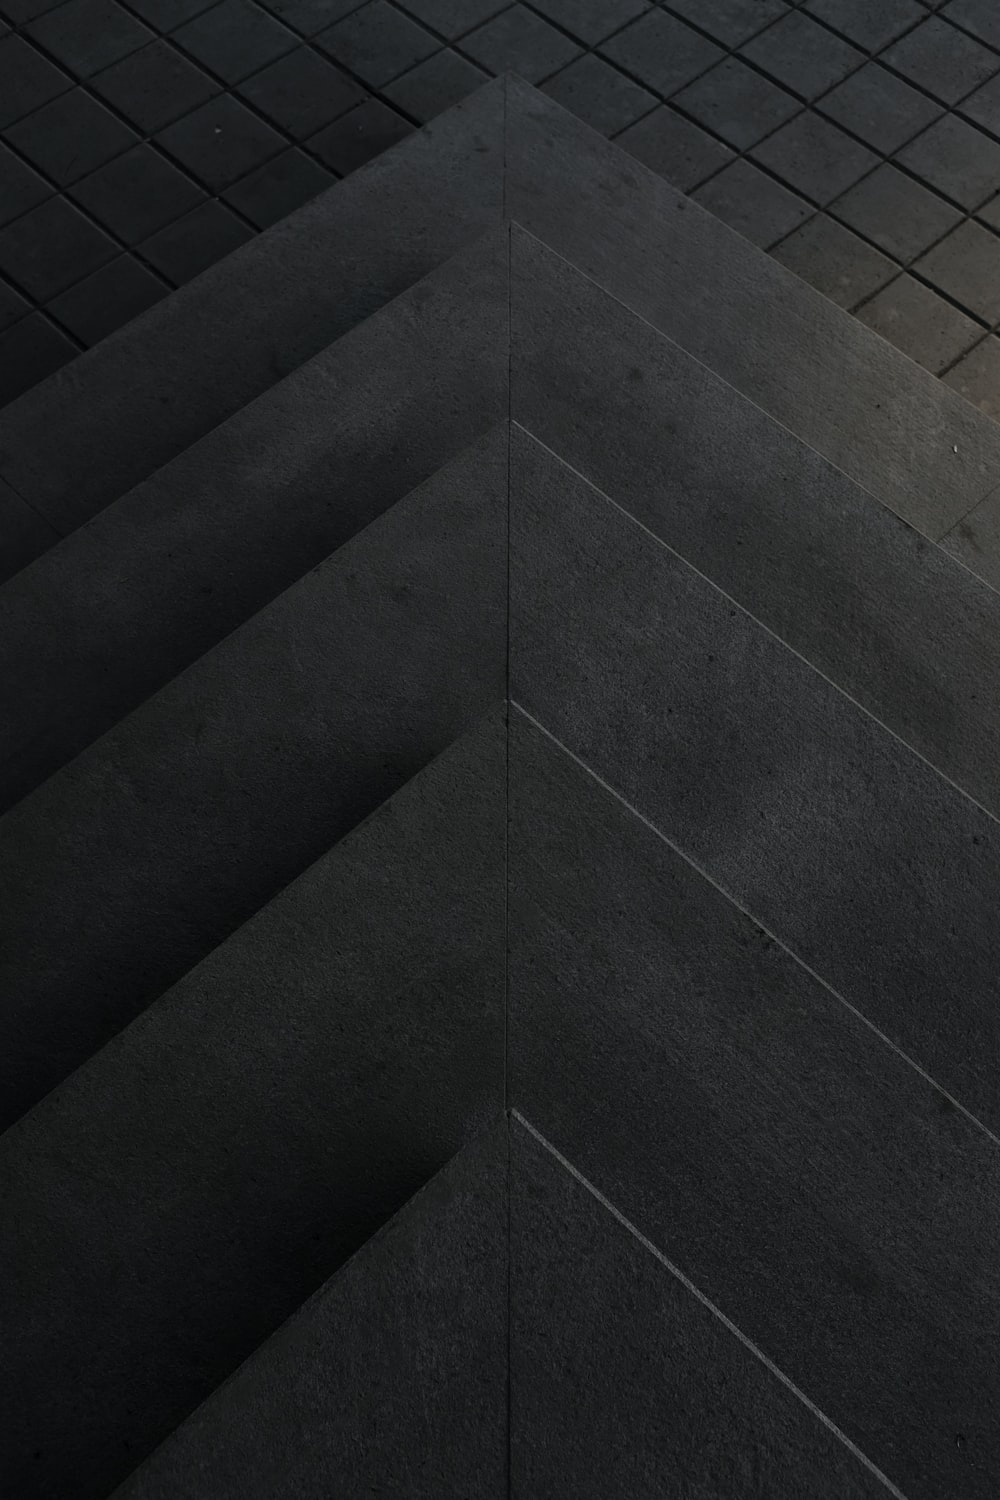 aerial view photography of concrete step